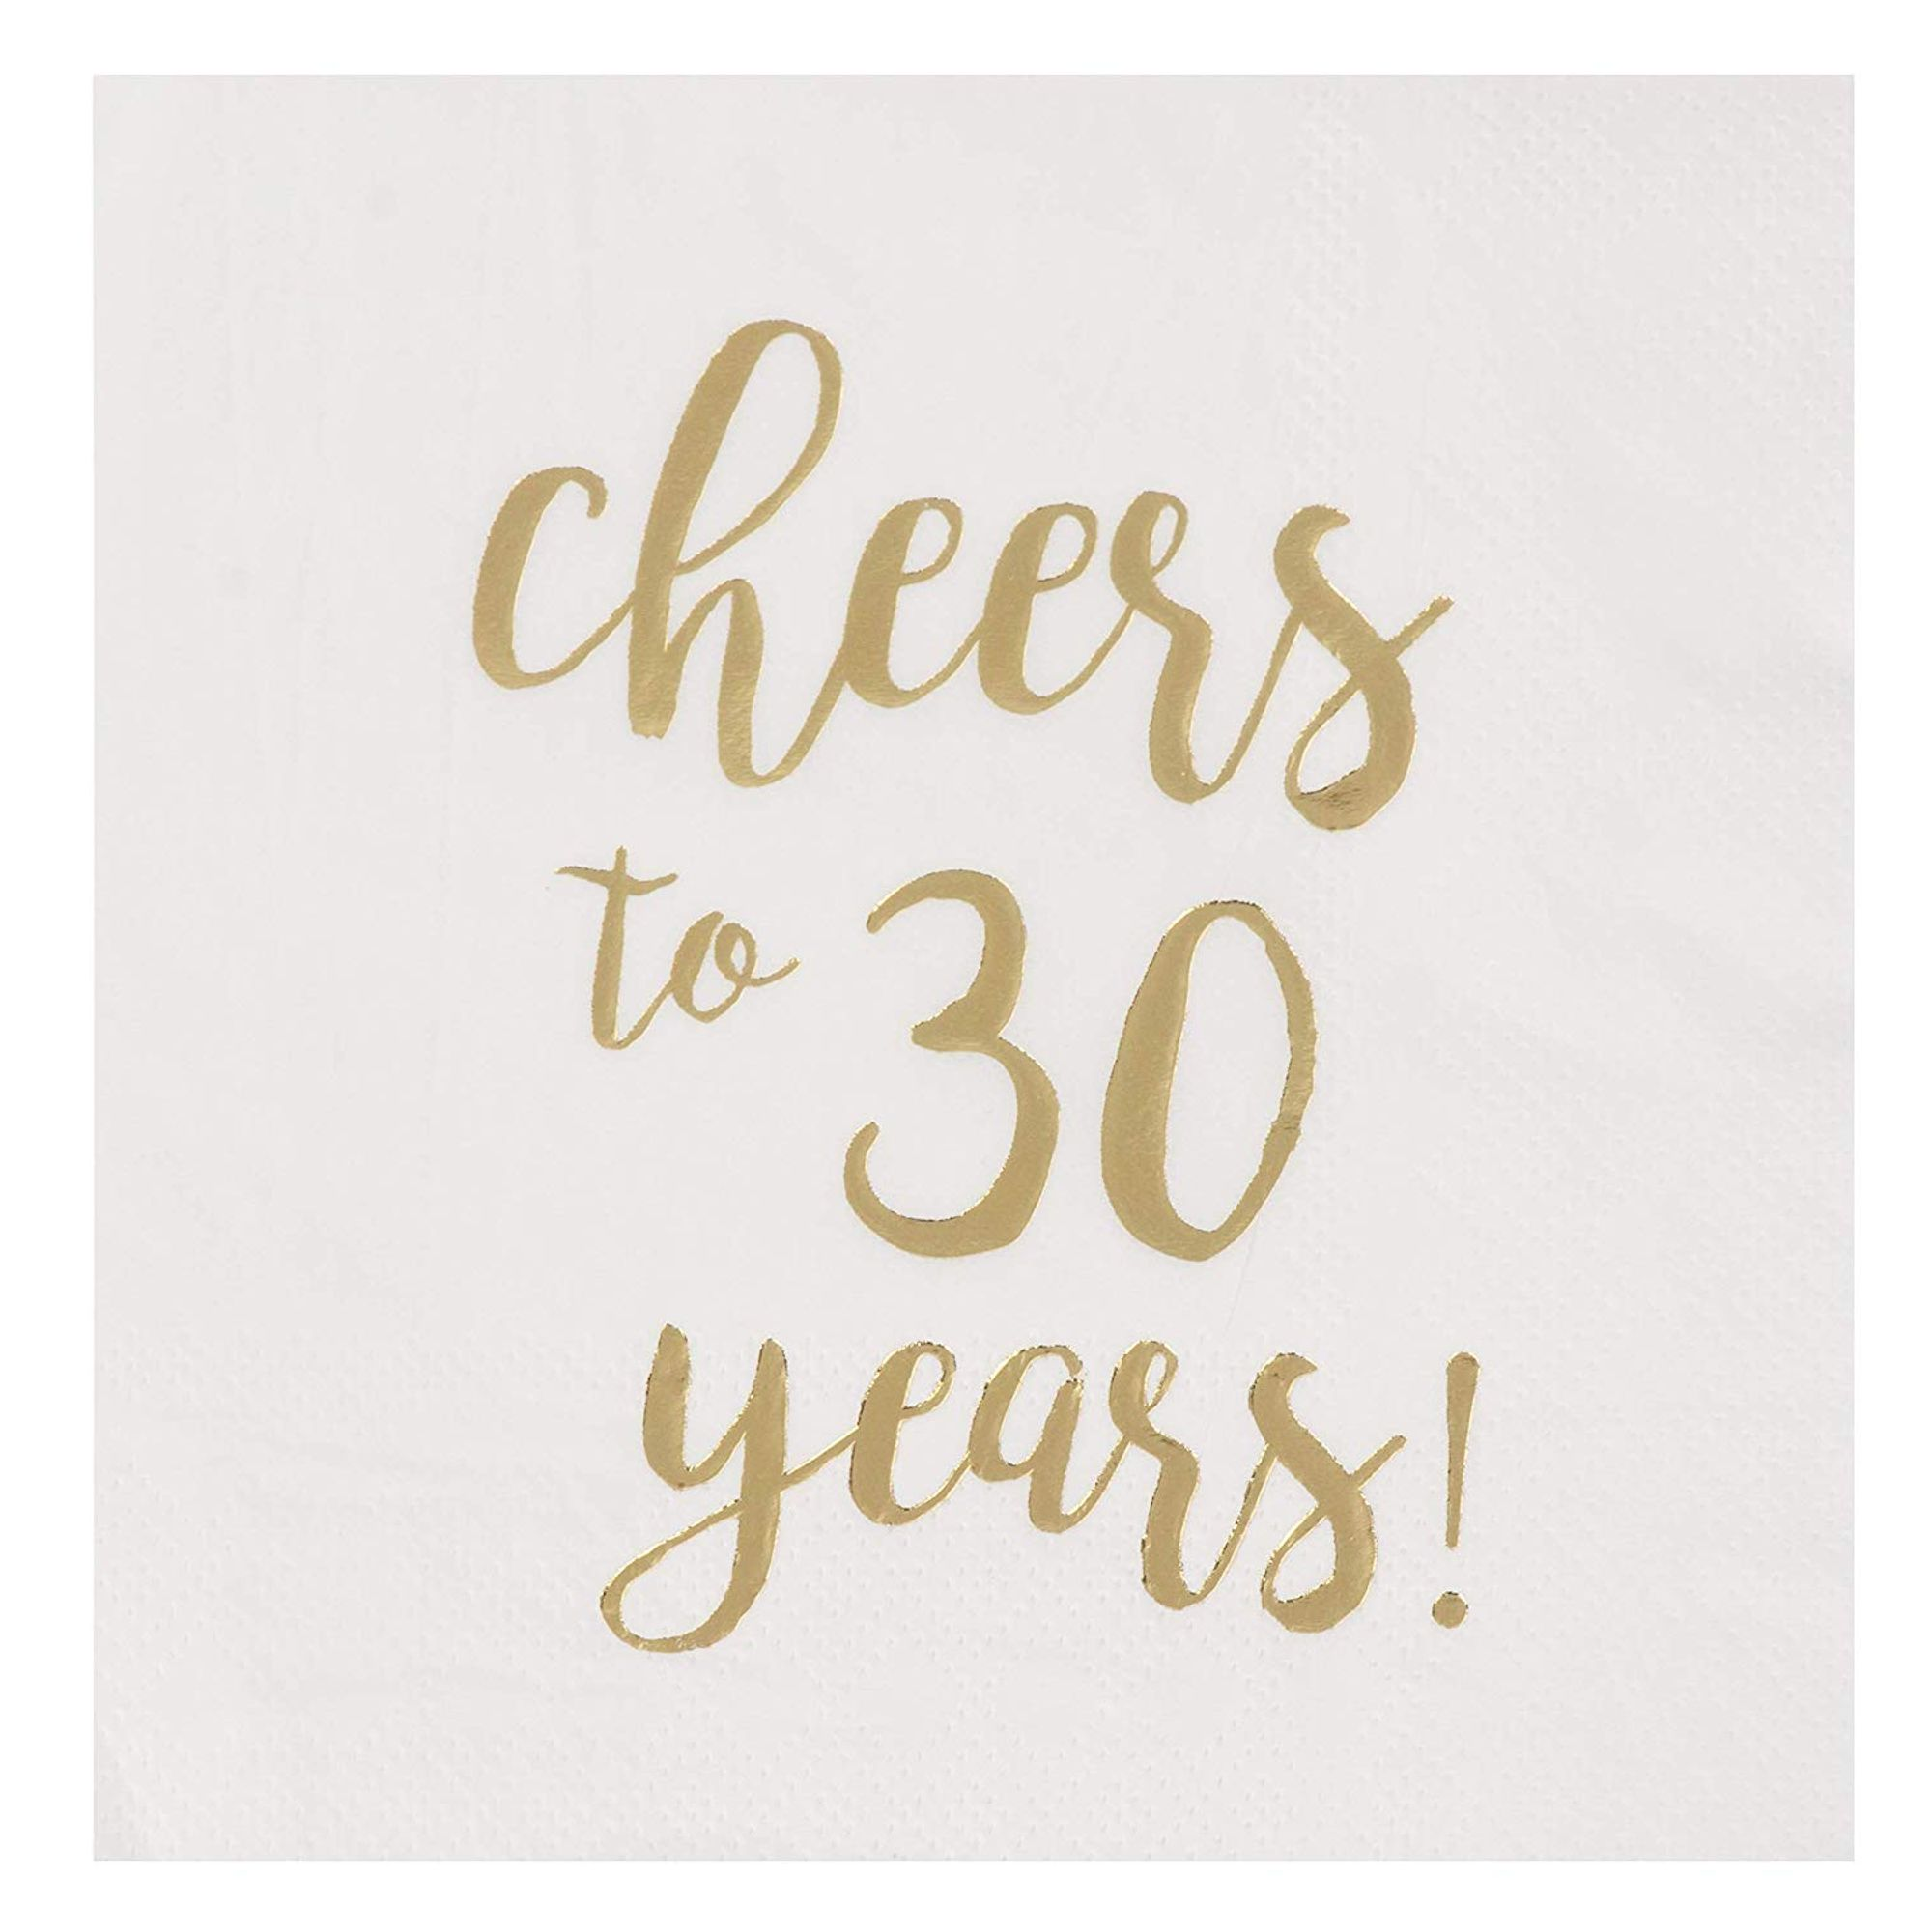 Cocktail Napkins 50 Pack Cheers To 30 Years In Gold Foil Disposable Paper Napkins 3 Ply 30th Birthday Decorations Wedding Anniversary Party Supplies White Folded 5 X 5 Inches Walmart Com Walmart Com